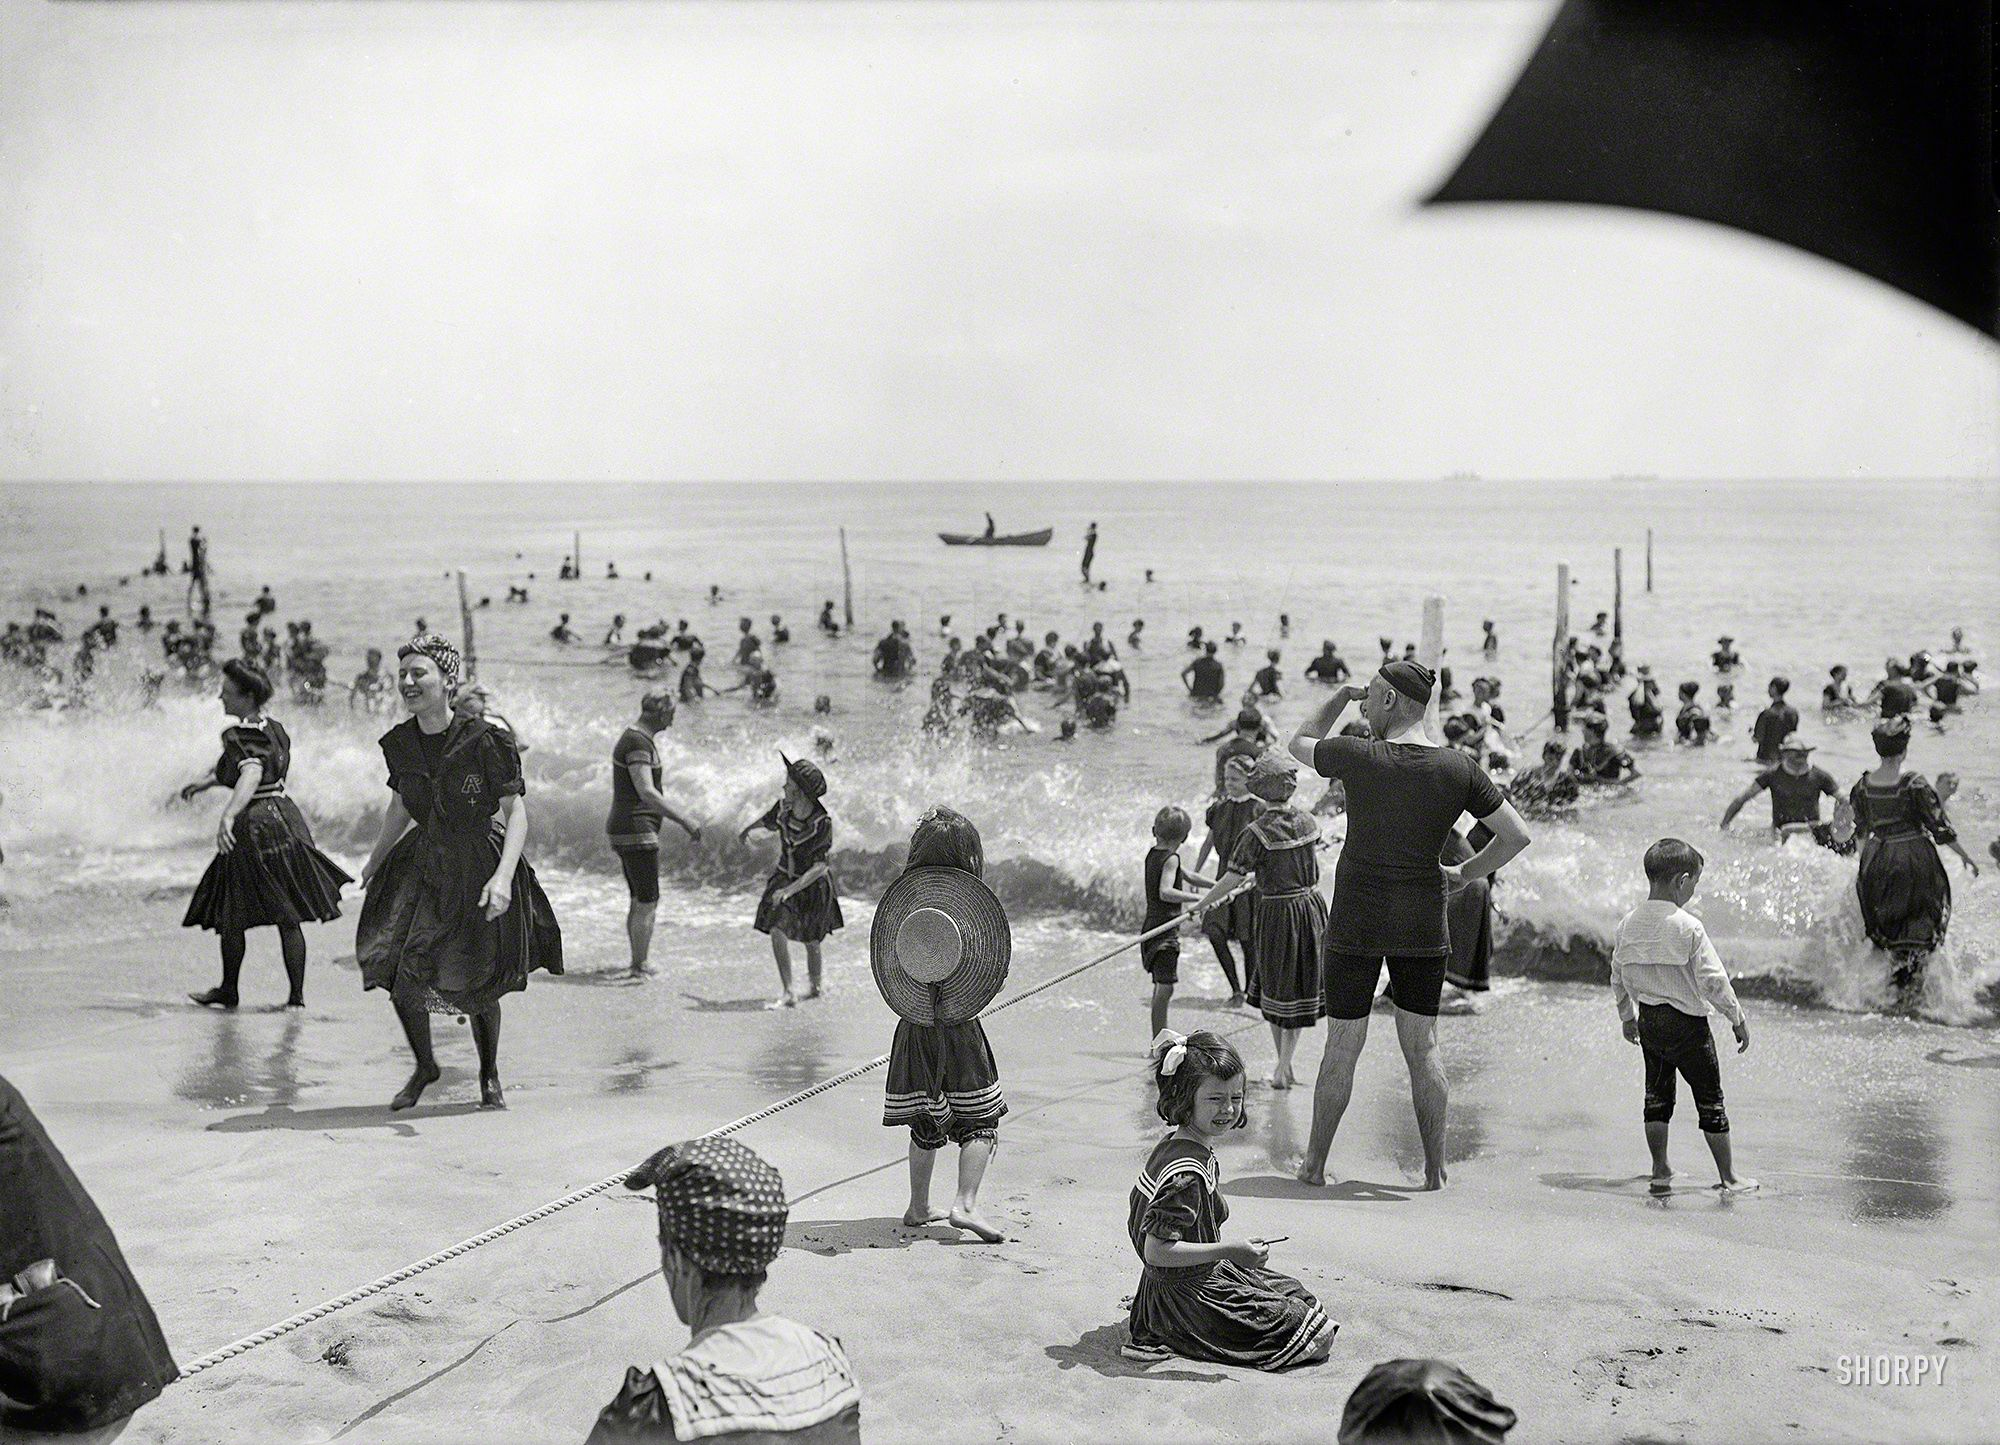 Shorpy Historic Picture Archive :: More Manhanset: 1904